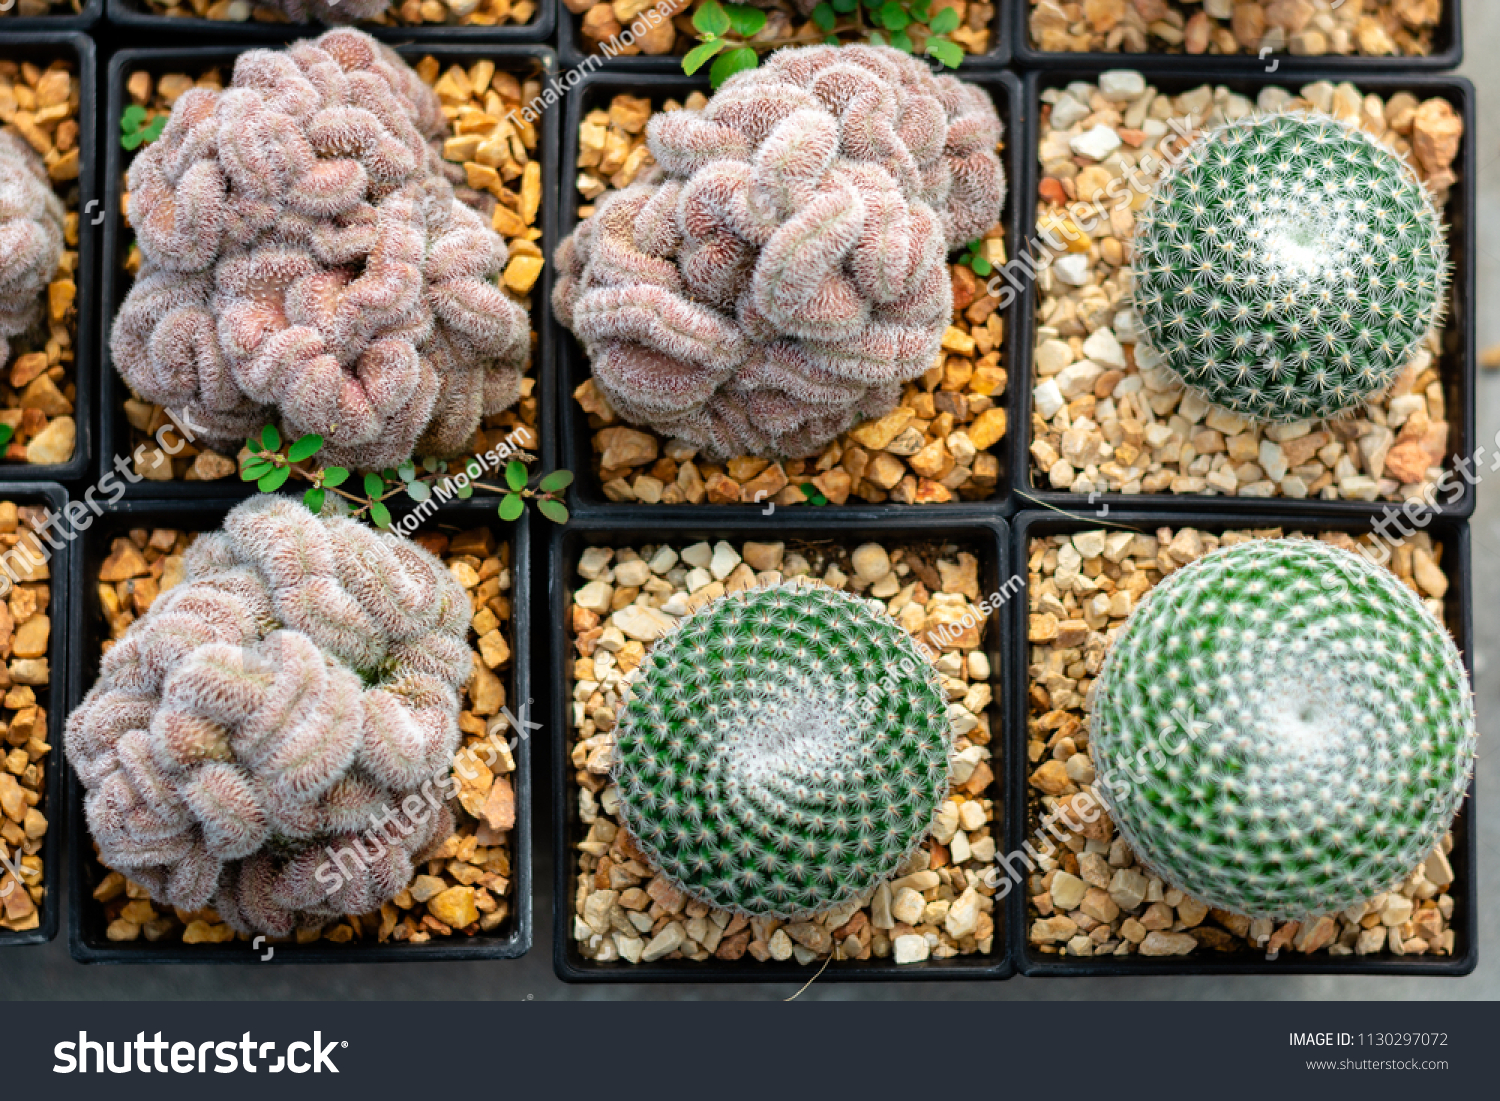 Cactus 2 types in small pot